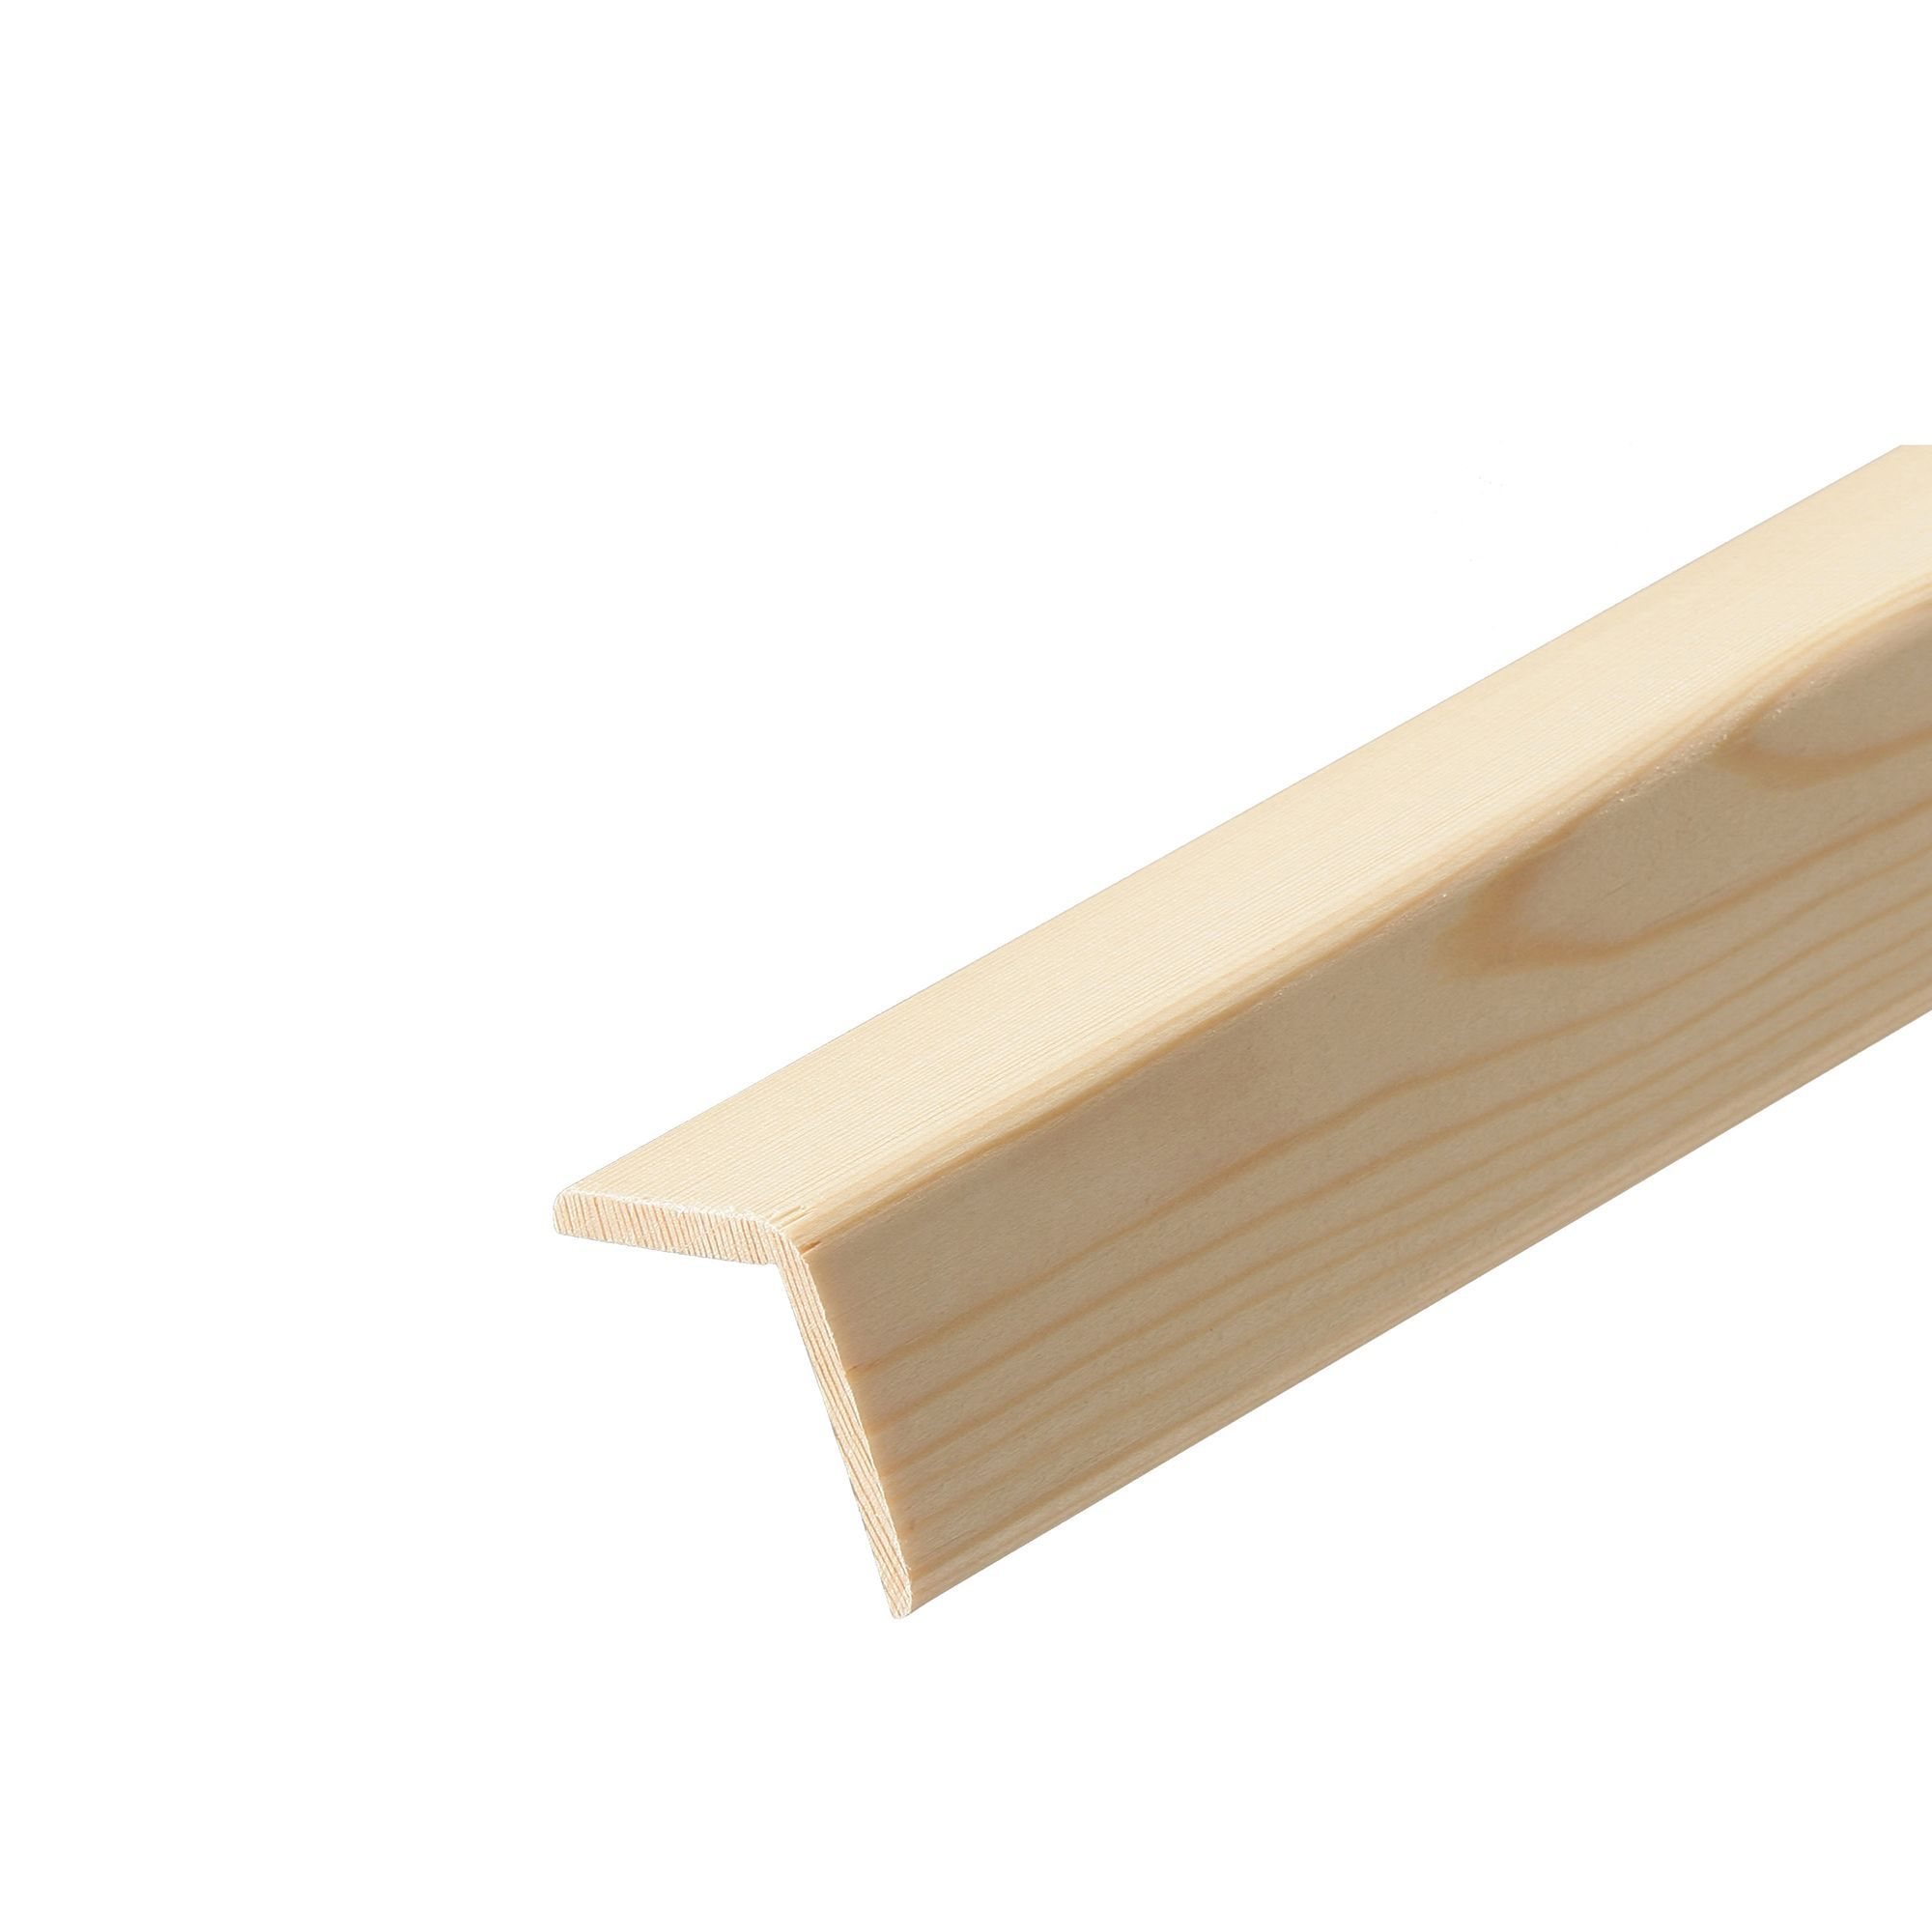 Pine Angle moulding (T)38mm (W)38mm (L)2400mm